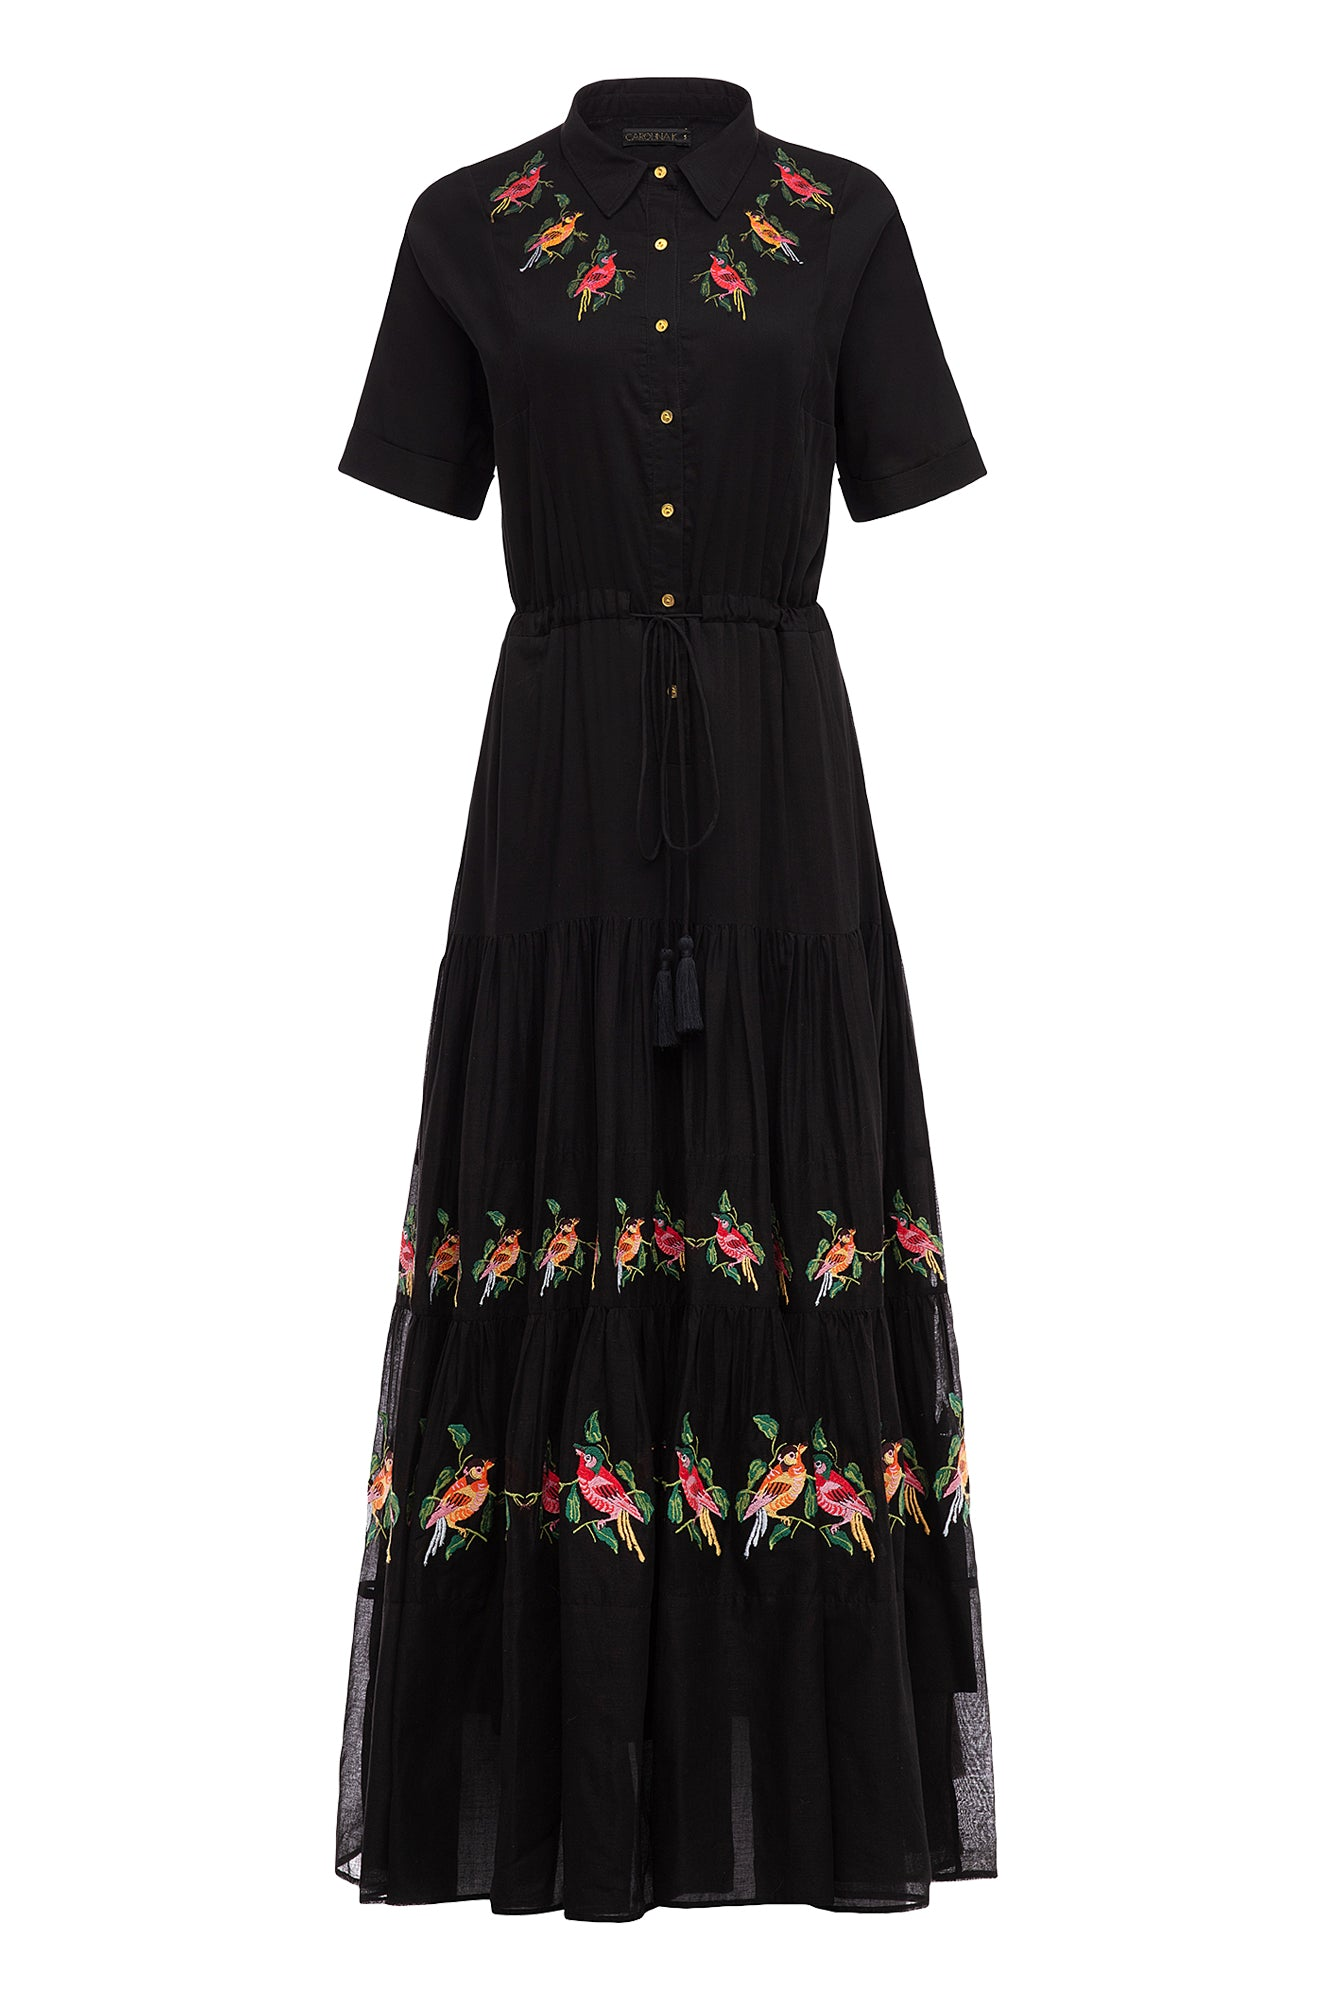 Carolina K Natalie Short Sleeve Dress Black